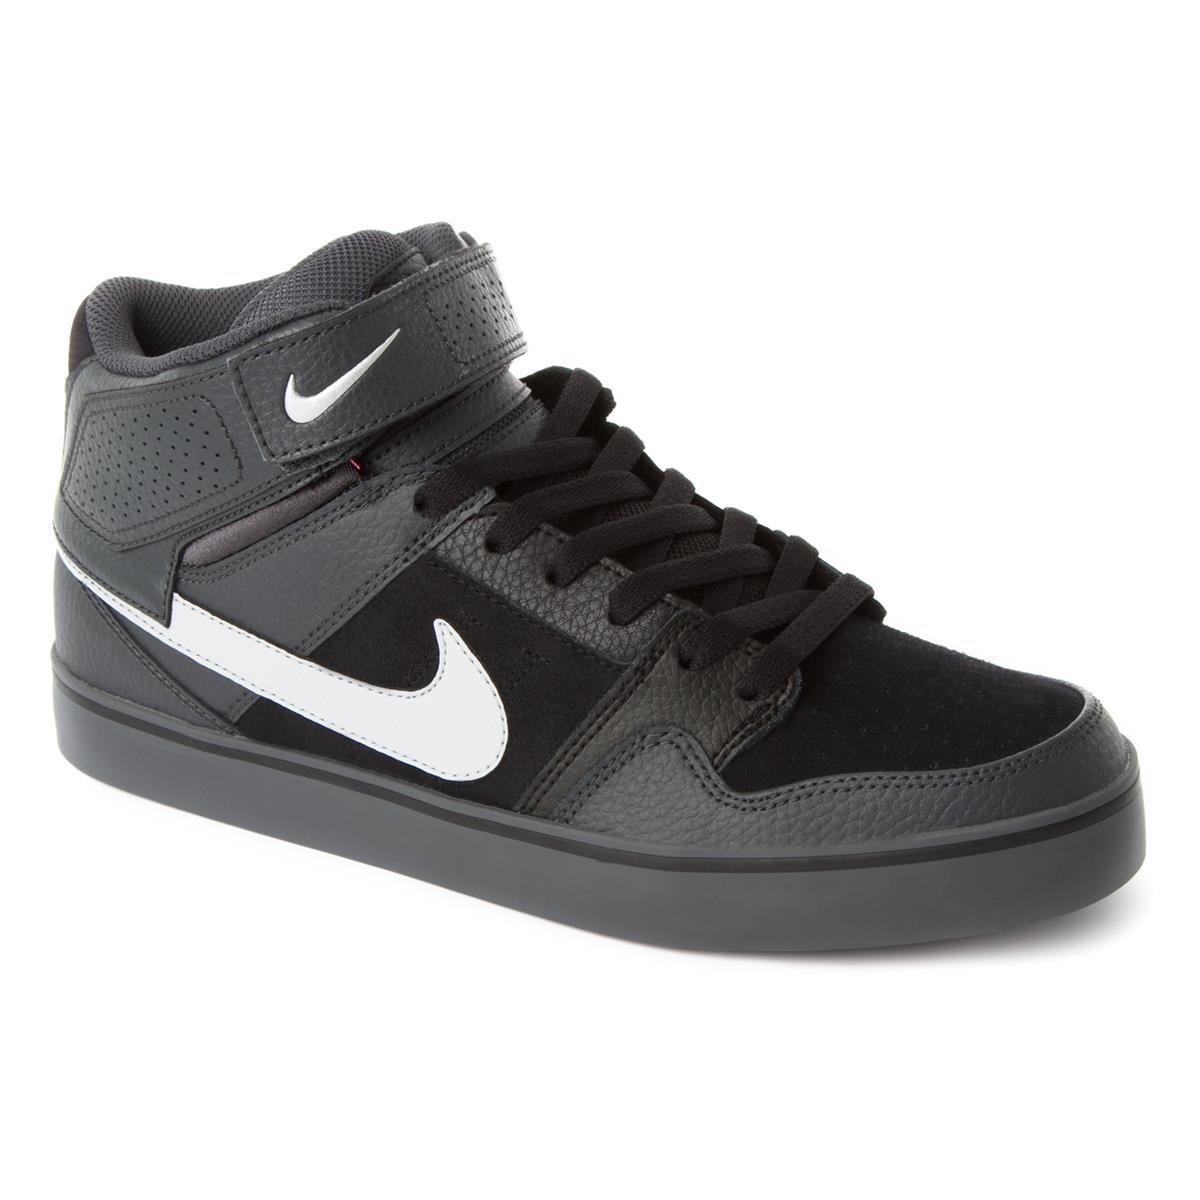 nike schuhe mogan mid 2 se anthracite metallic silver. Black Bedroom Furniture Sets. Home Design Ideas